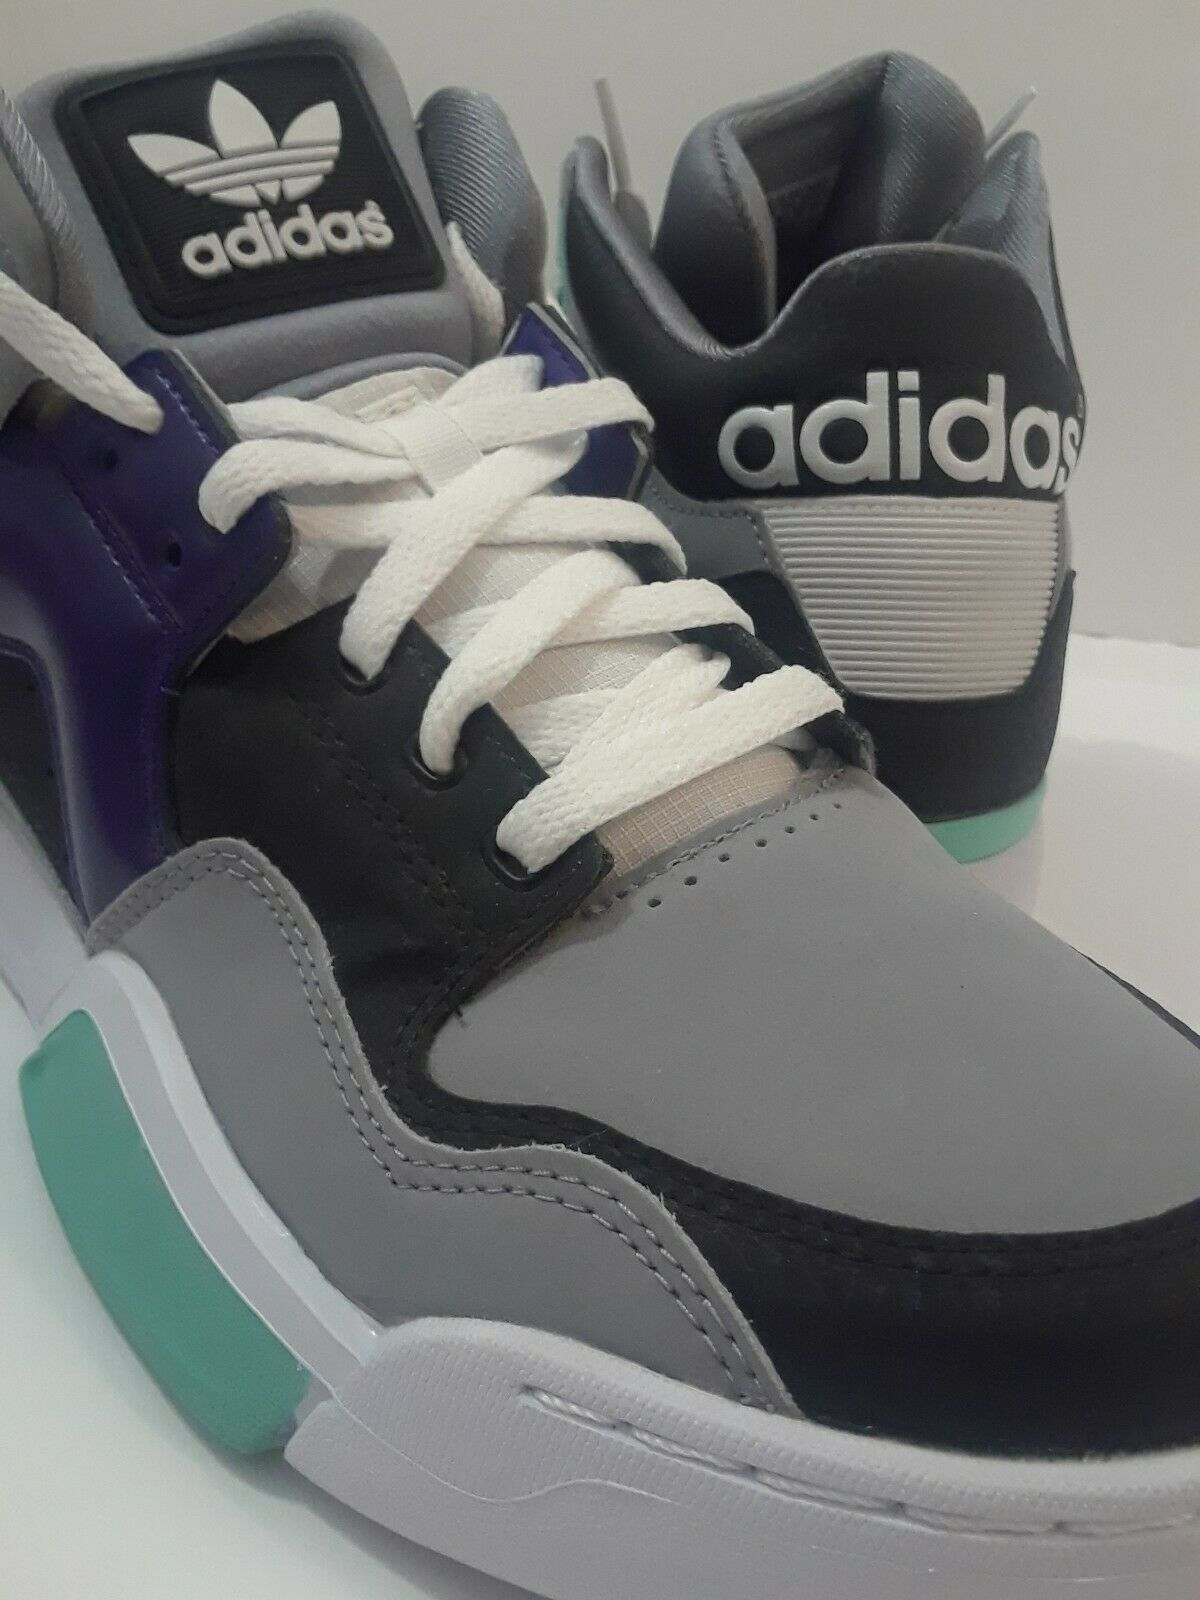 Adidas Chunky Dad shoes Zx Trainer Pro Grape Teal color Block Running Mens Sz 12